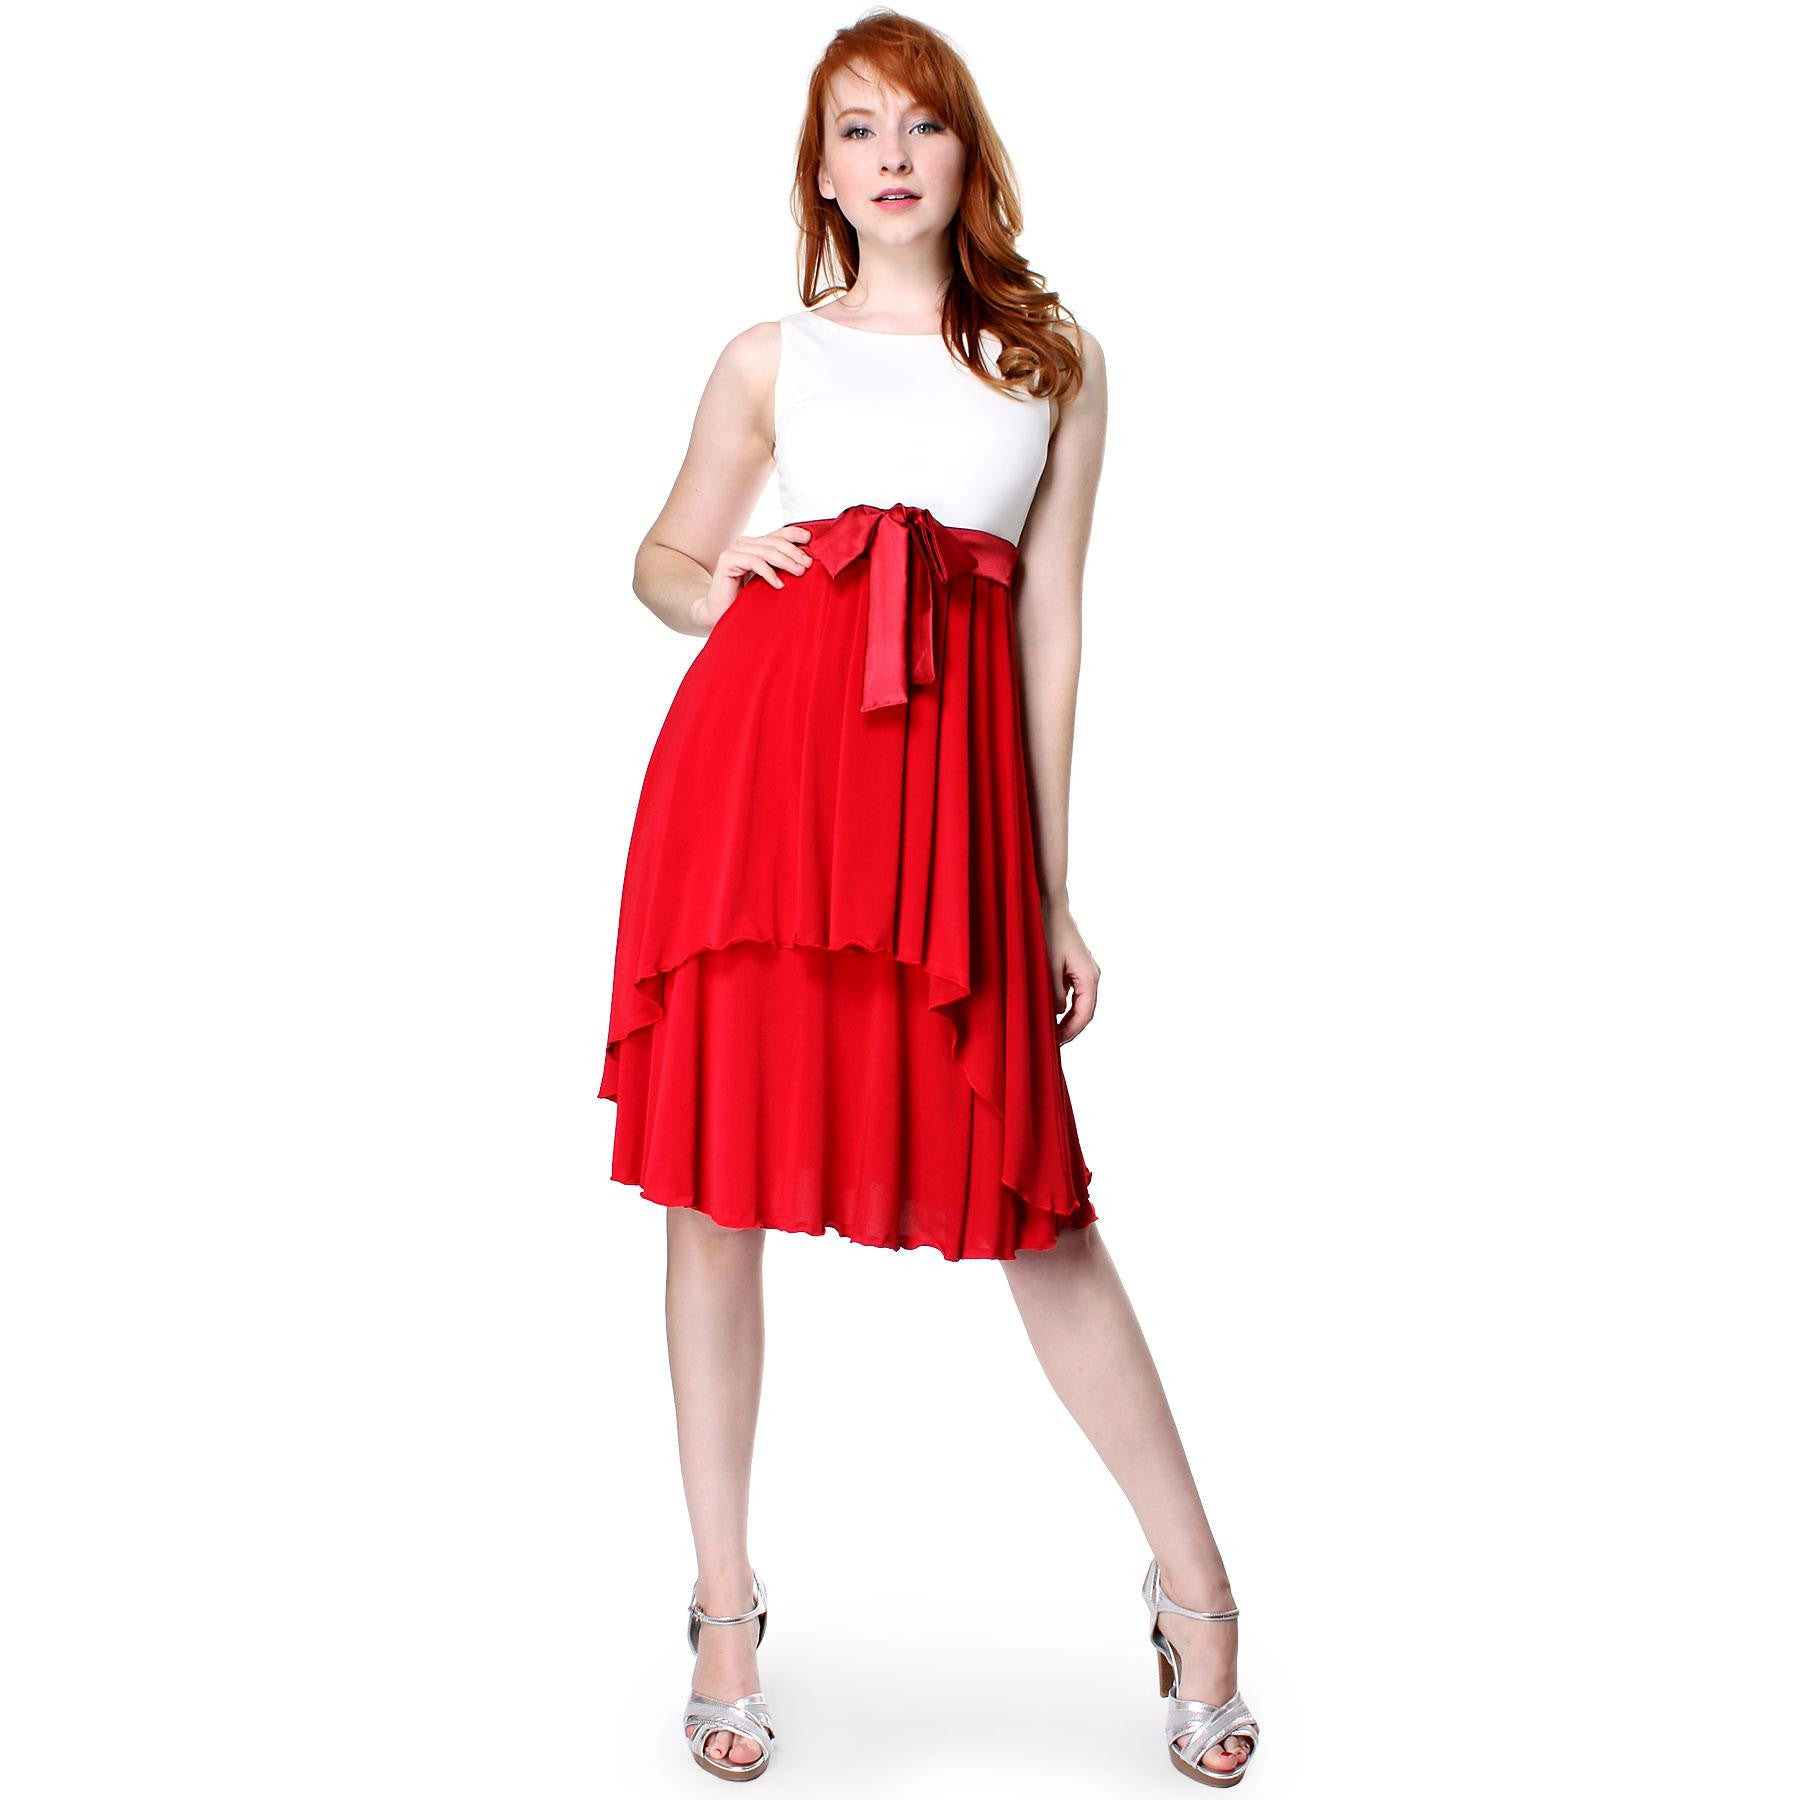 Evanese Women\'s Cute Sleeveless Fit and Flare Pleated Knee Length ...